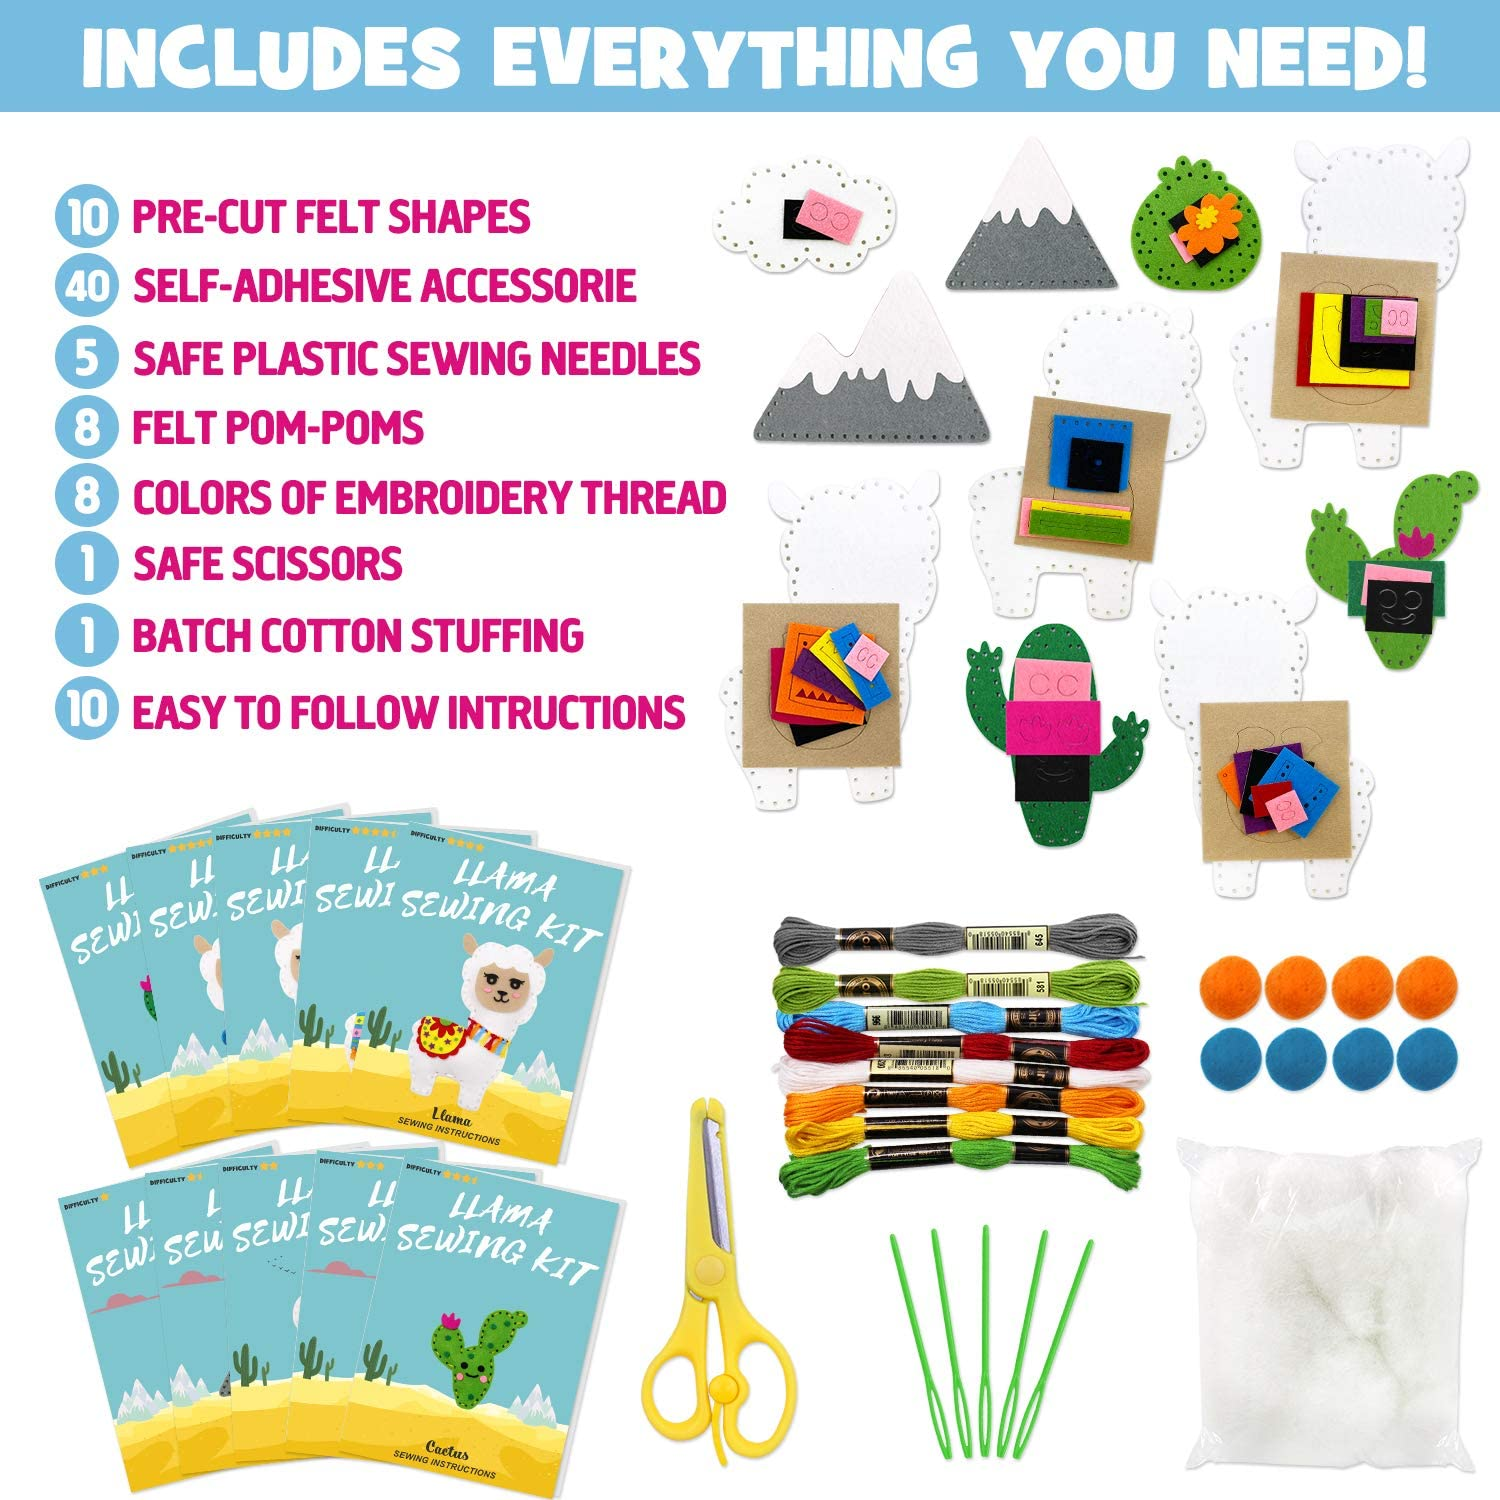 Easy Instructions and Safety Material to Sewing Beginners Educational Gift for Boys and Girls Llama Sewing Kit for Kids Make Your Own Llama Cactus Fun DIY Felt Craft Kit Includes 10 Creative Projects